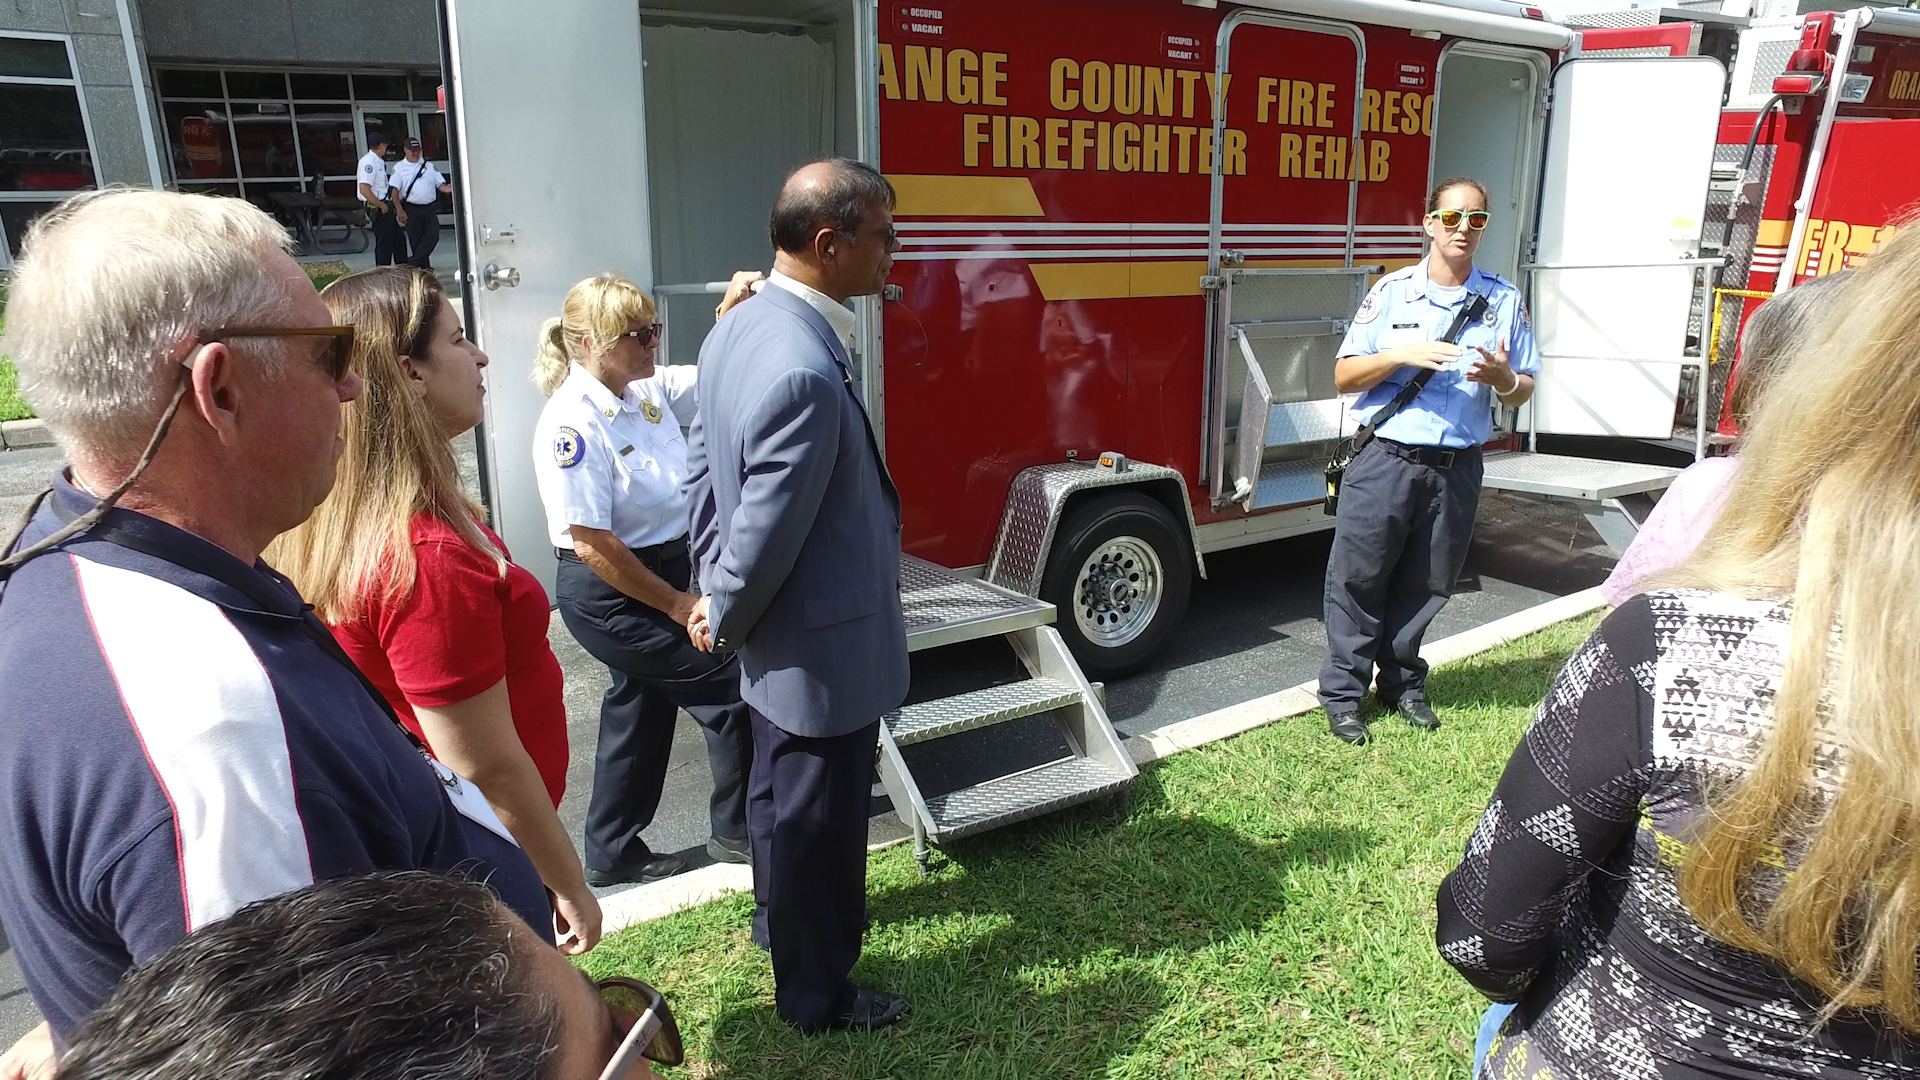 People standing next to a fire truck, listening to a first responder lecture